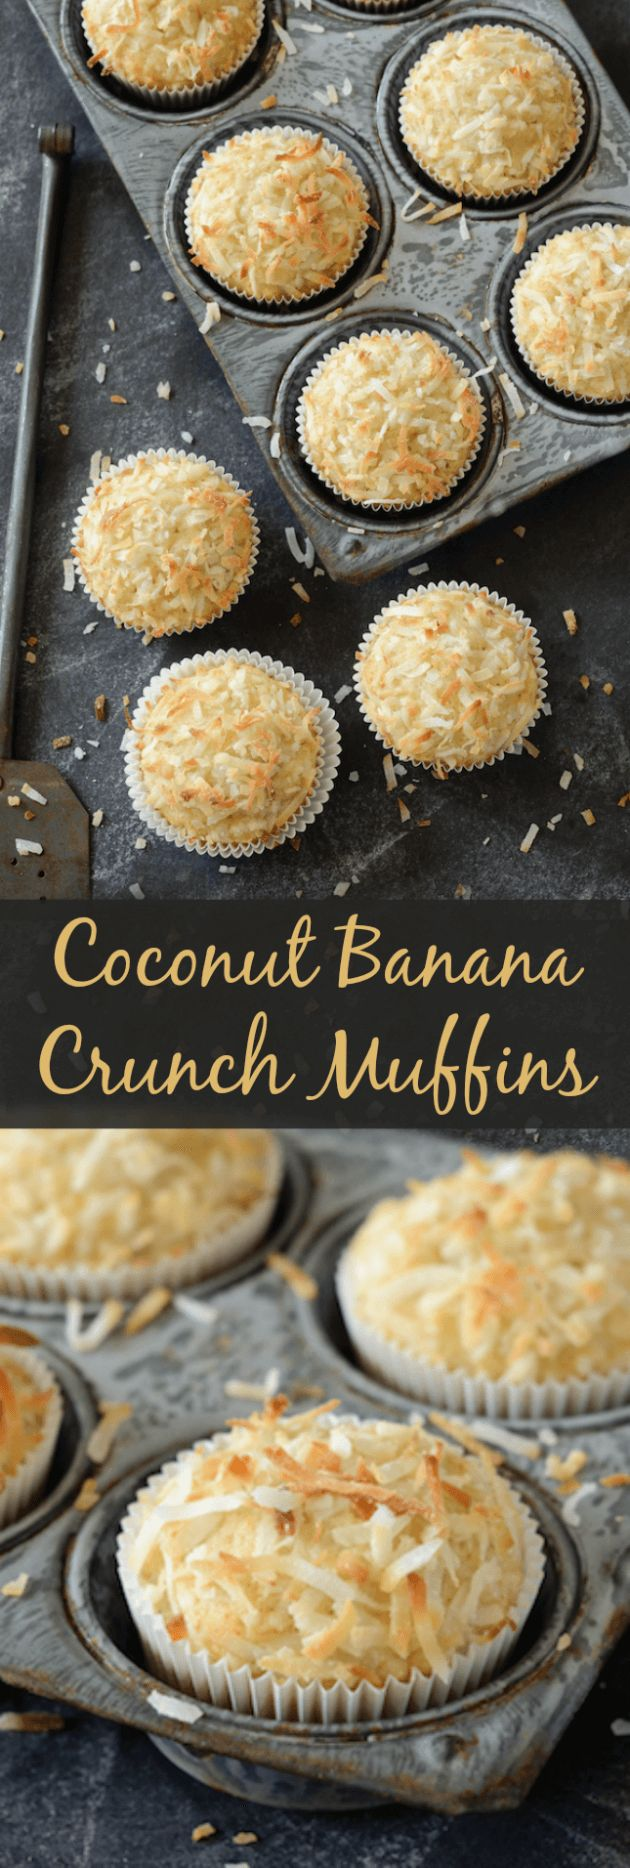 Coconut Banana Crunch Muffins a great way to use up overripe bananas and are a wonderful breakfast with a sweet banana muffin base and crunchy coconut top!